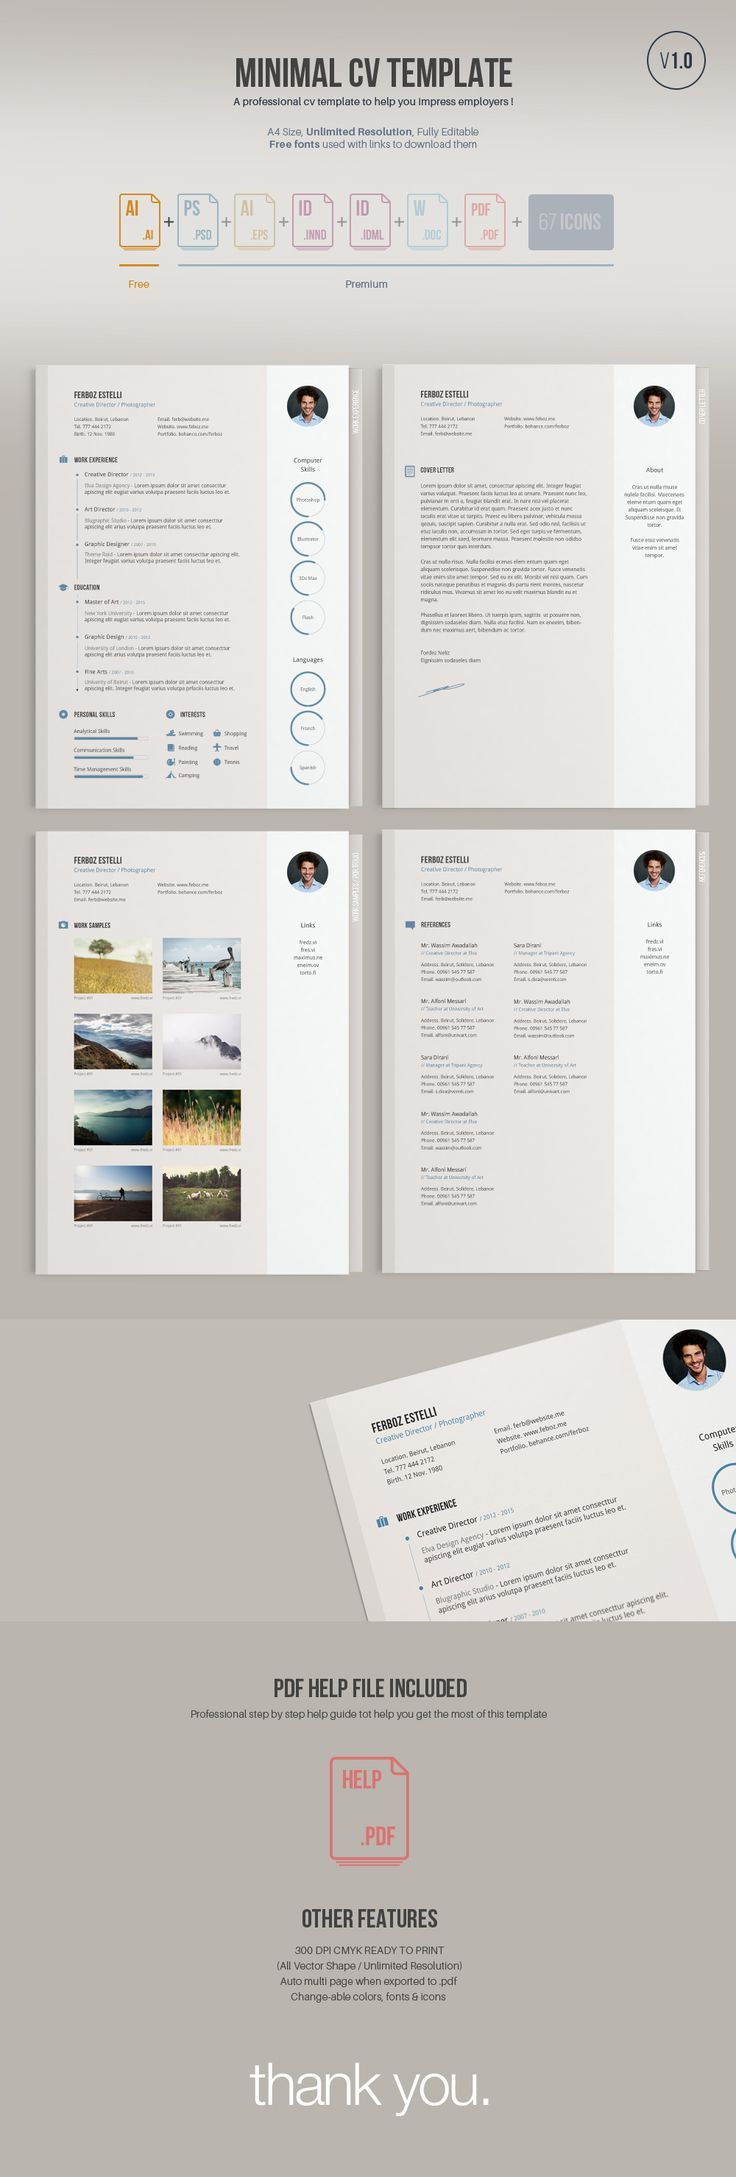 A minimal easy to edit free resume template; free version